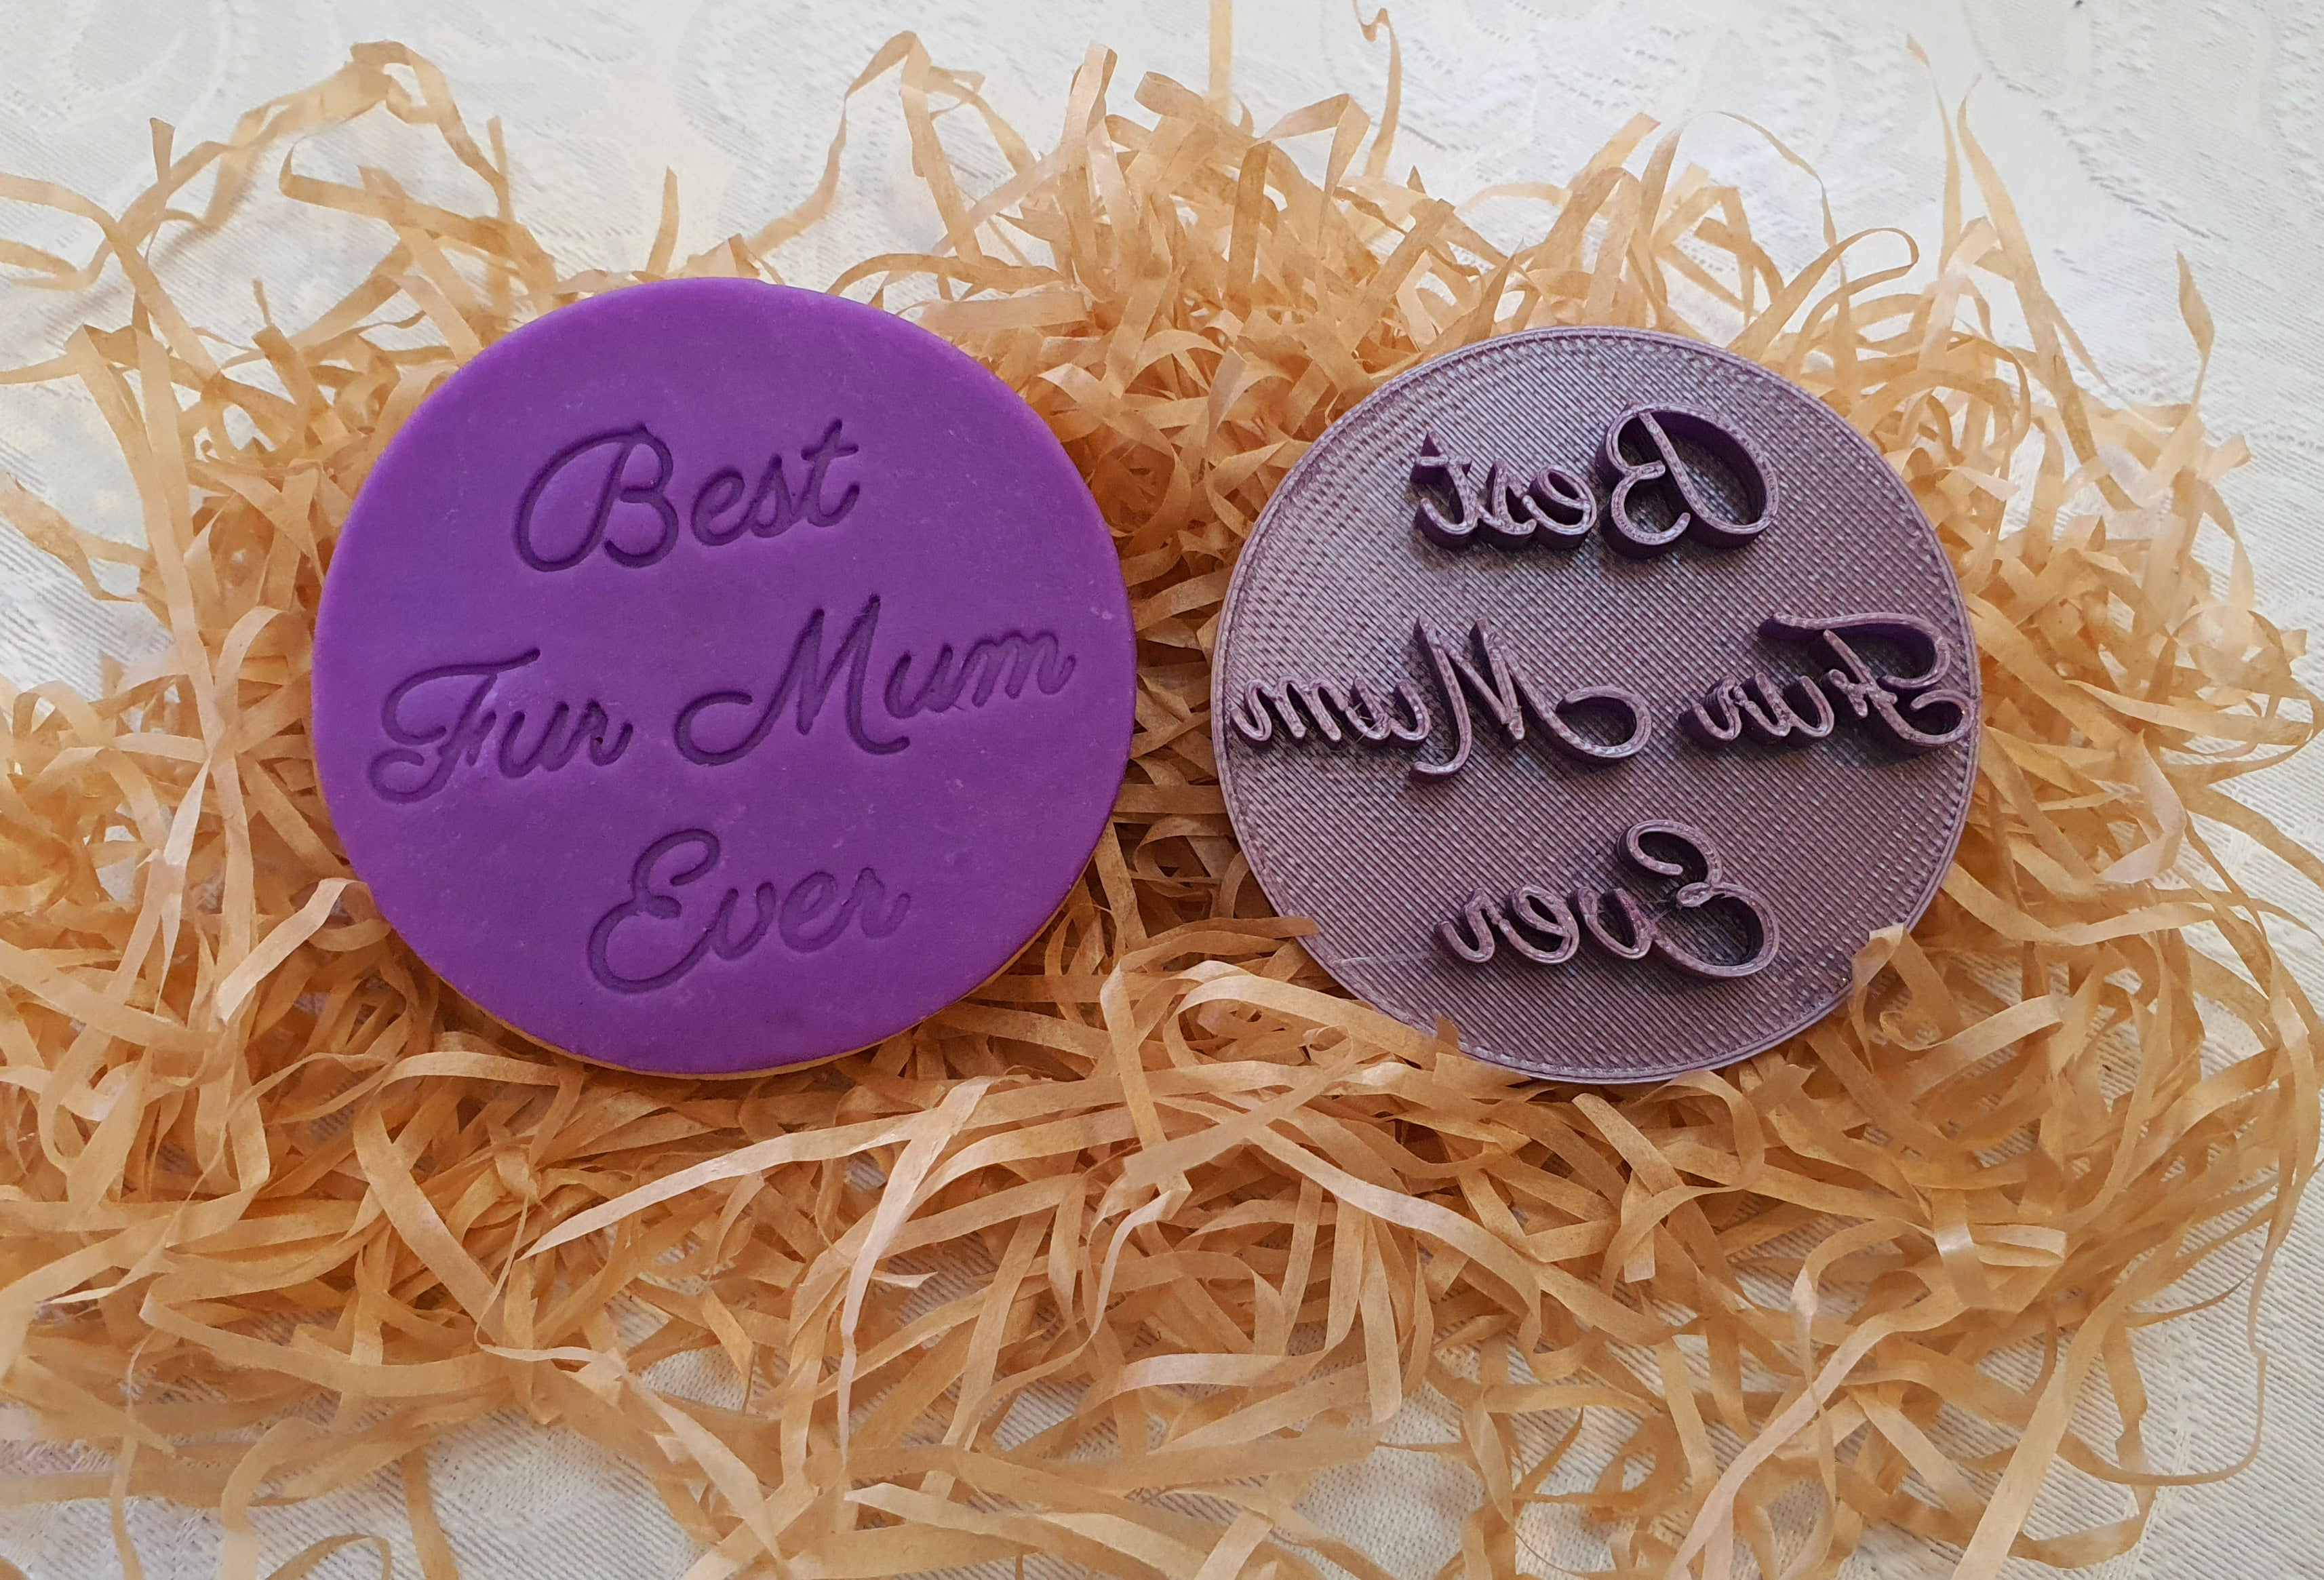 Fondant stamp 'Best Fur Mum Ever'